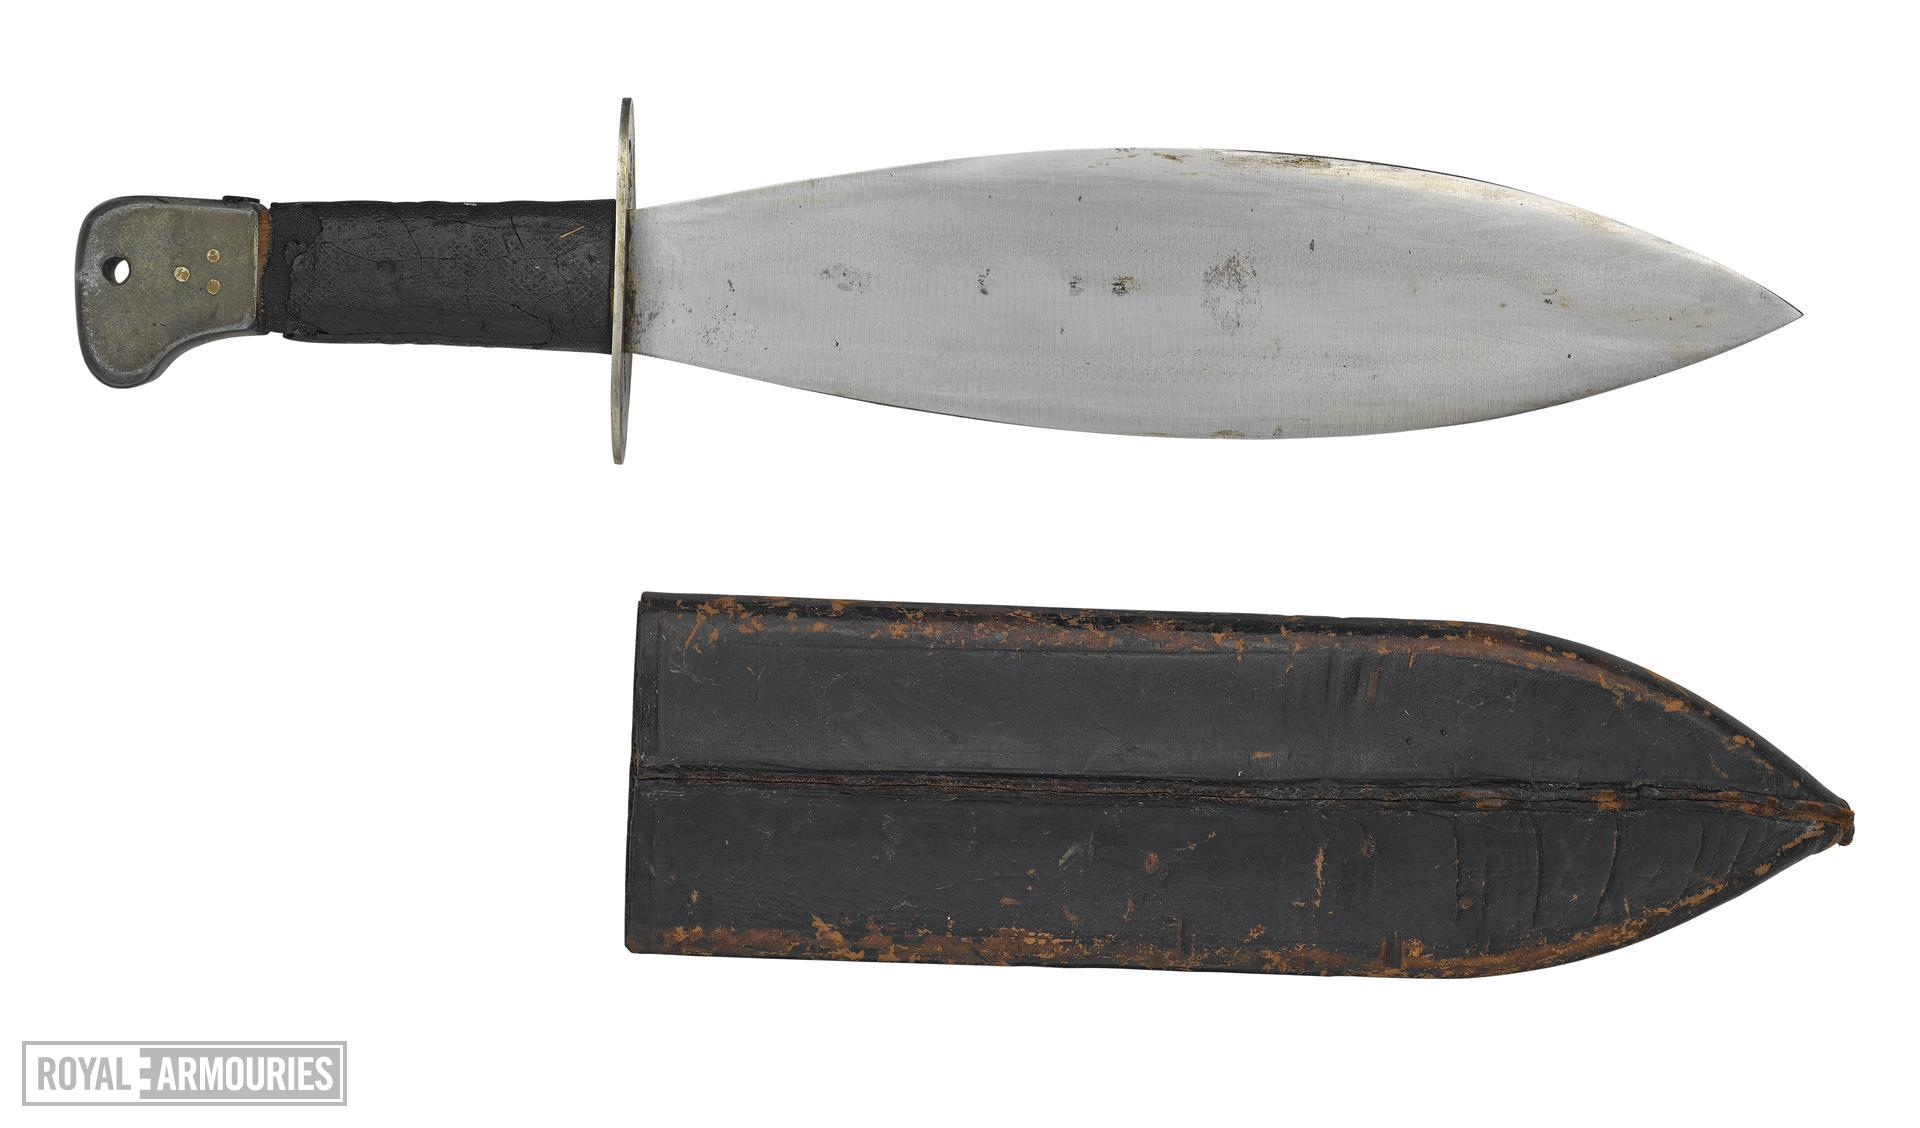 Welsh knife - Arms of the First World War